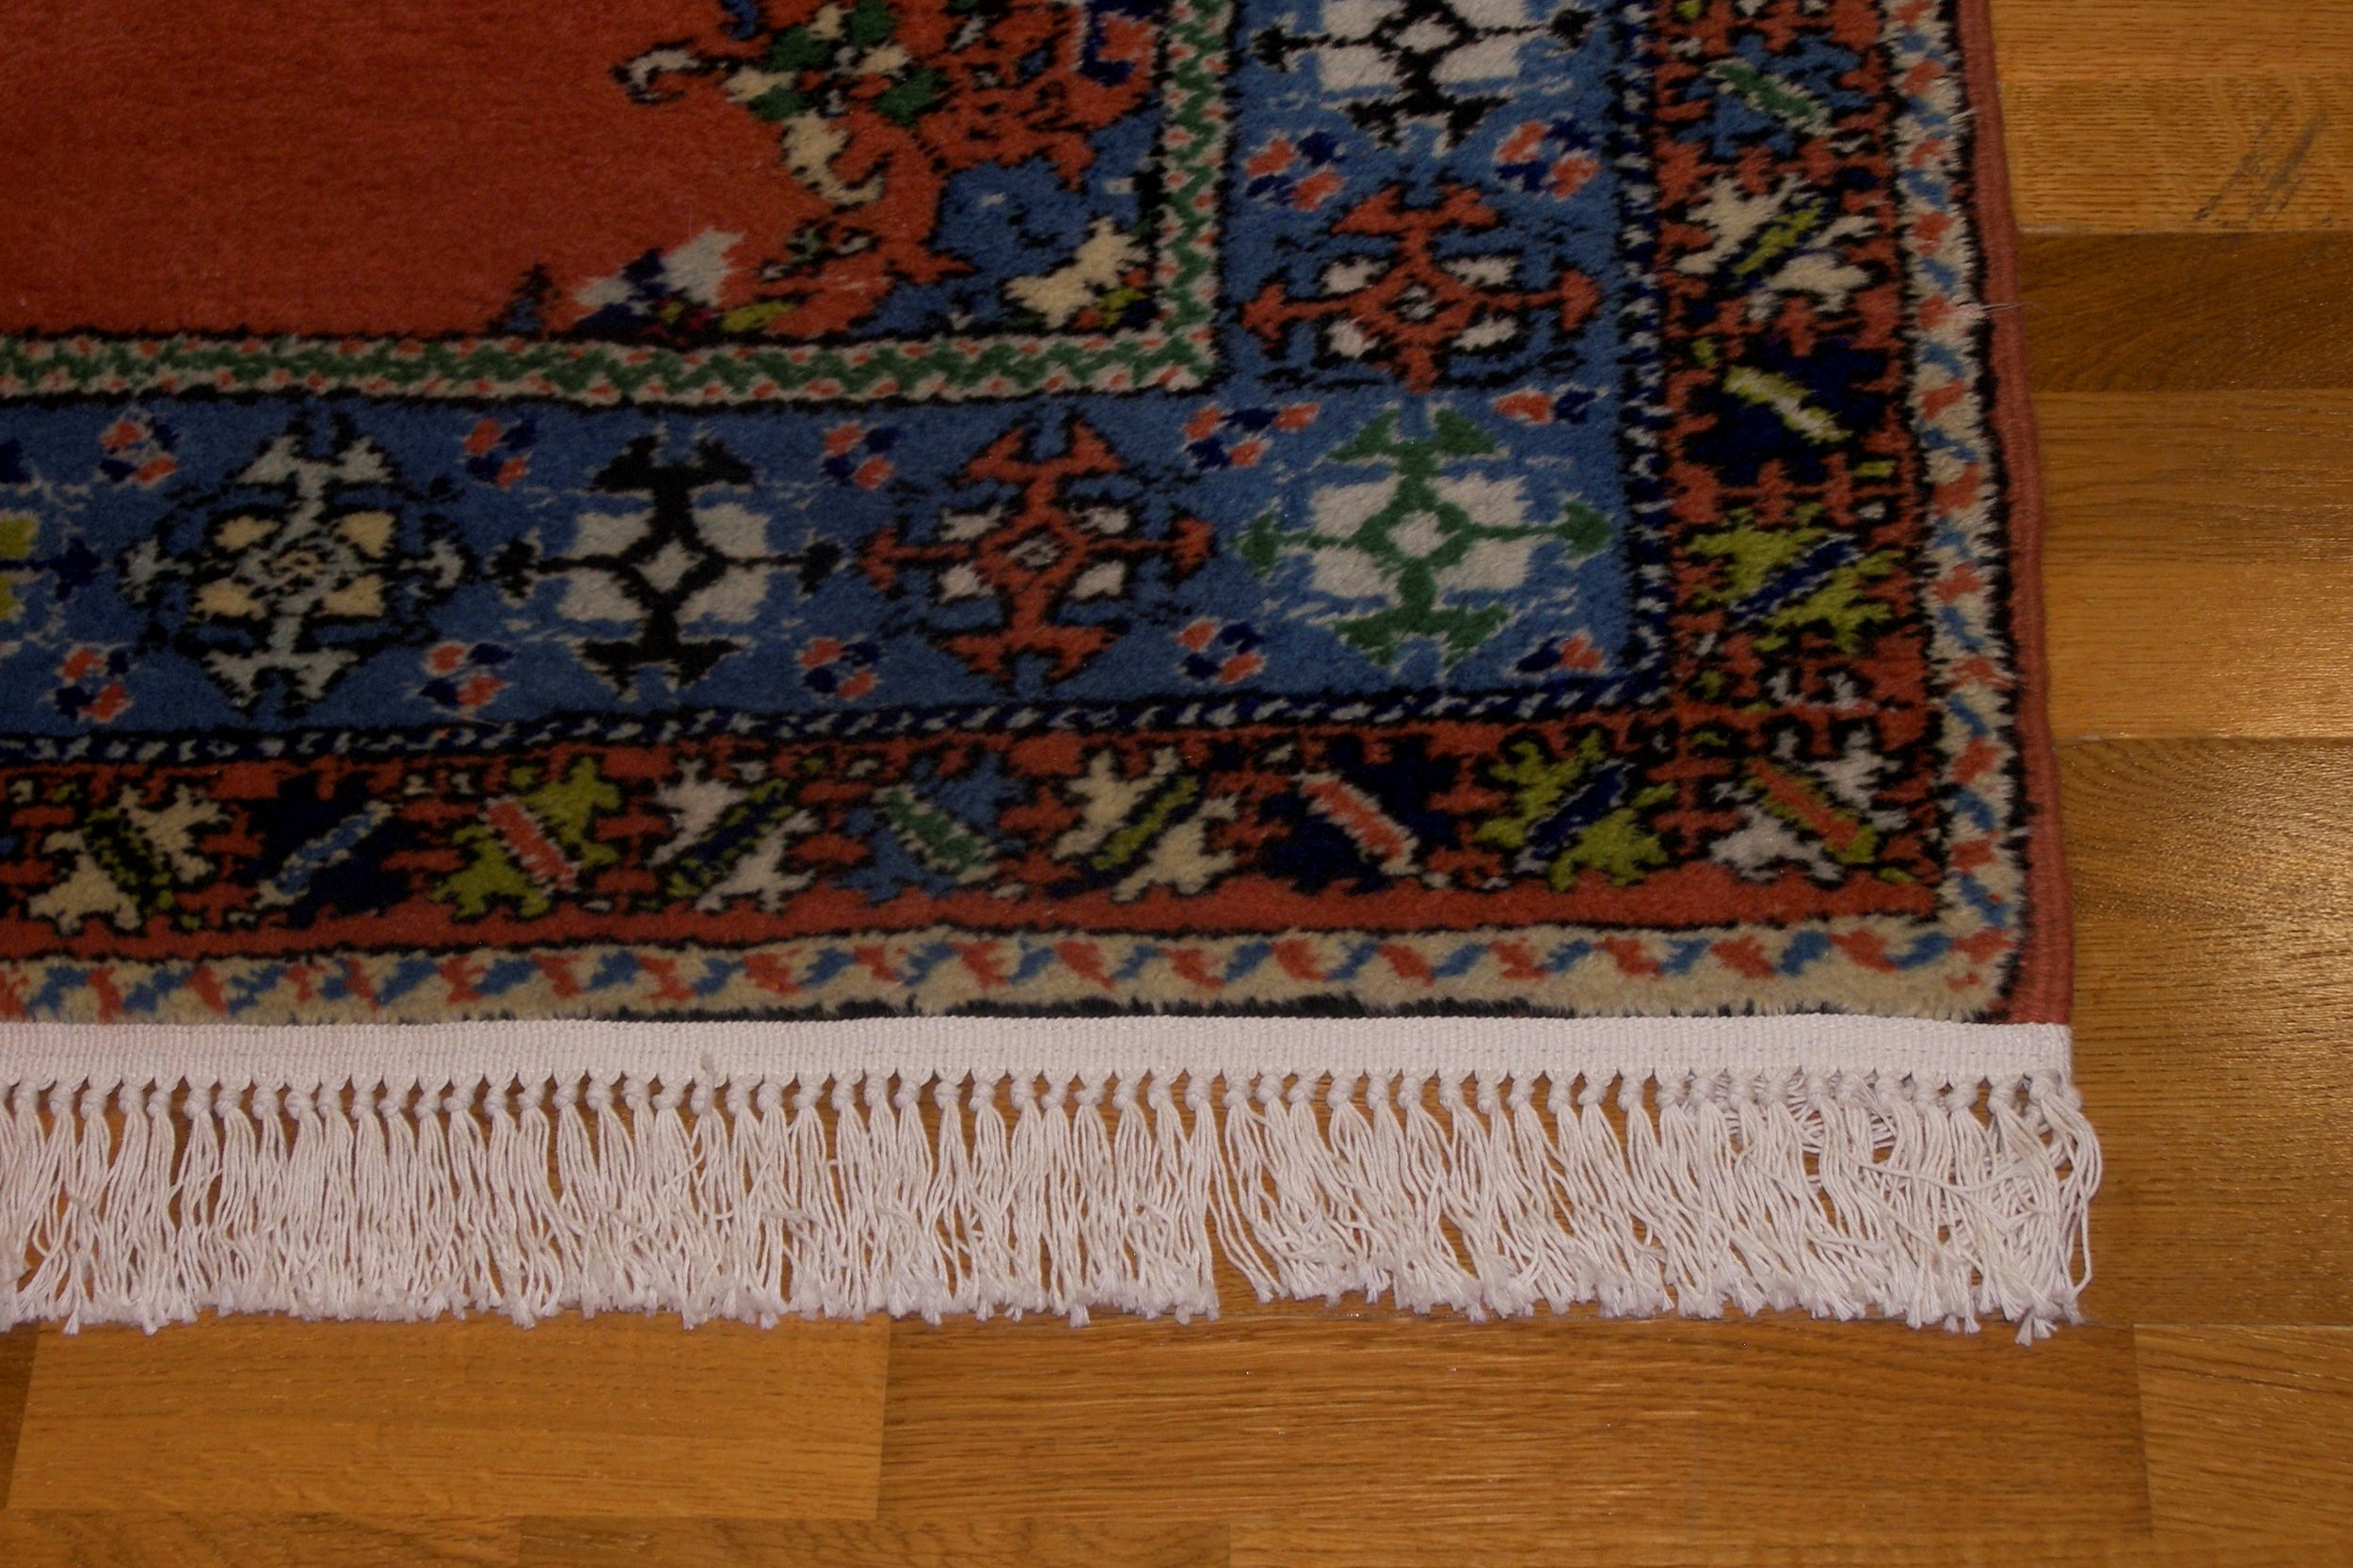 Area Rug Cleaning - We are able to clean Wool Rugs, Persian Rugs, Oriental Rugs, Silk Rugs, Synthetic Rugs, Fringing, and all types of fabrics.